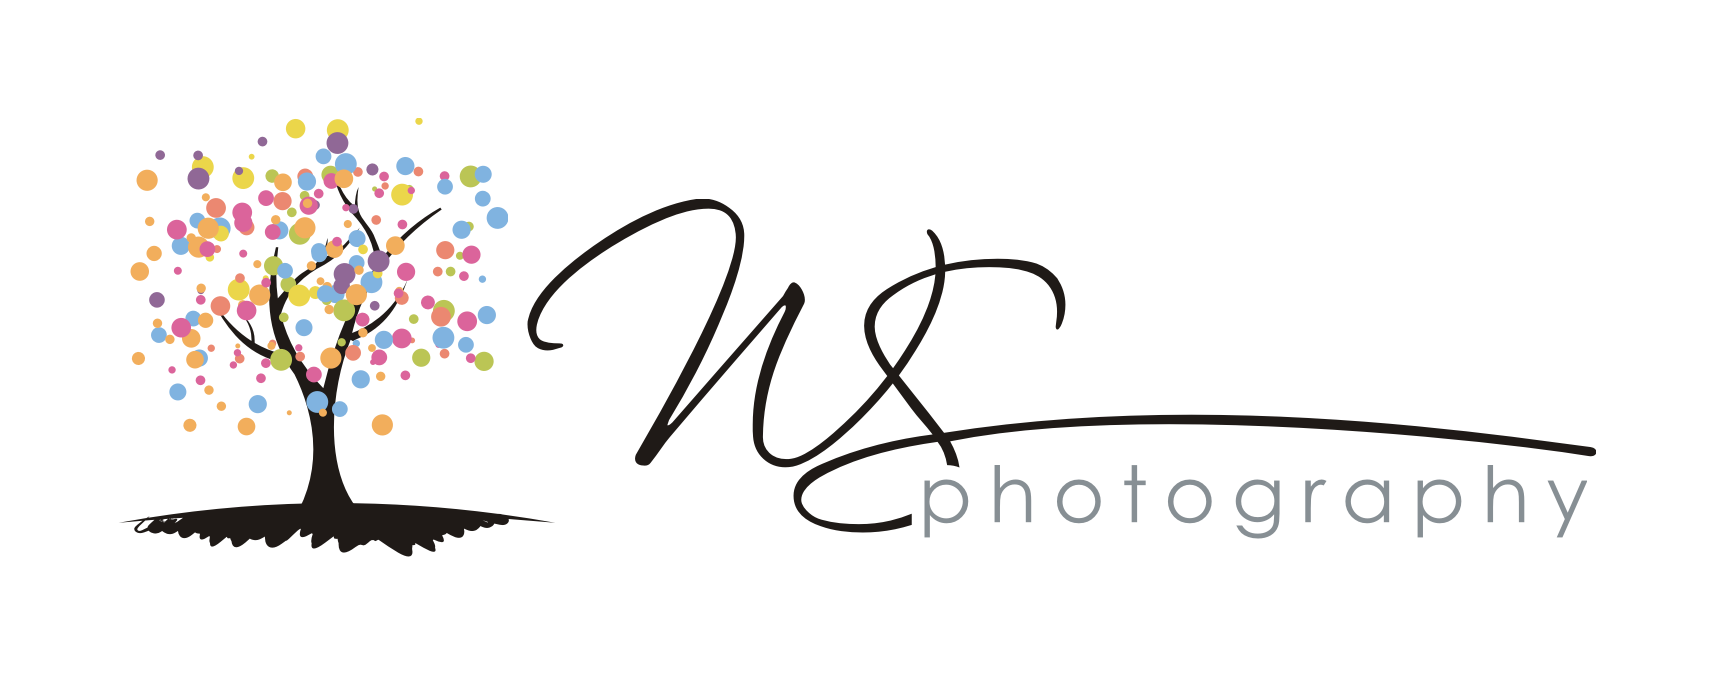 Png photography logo. Graphic design transprent free